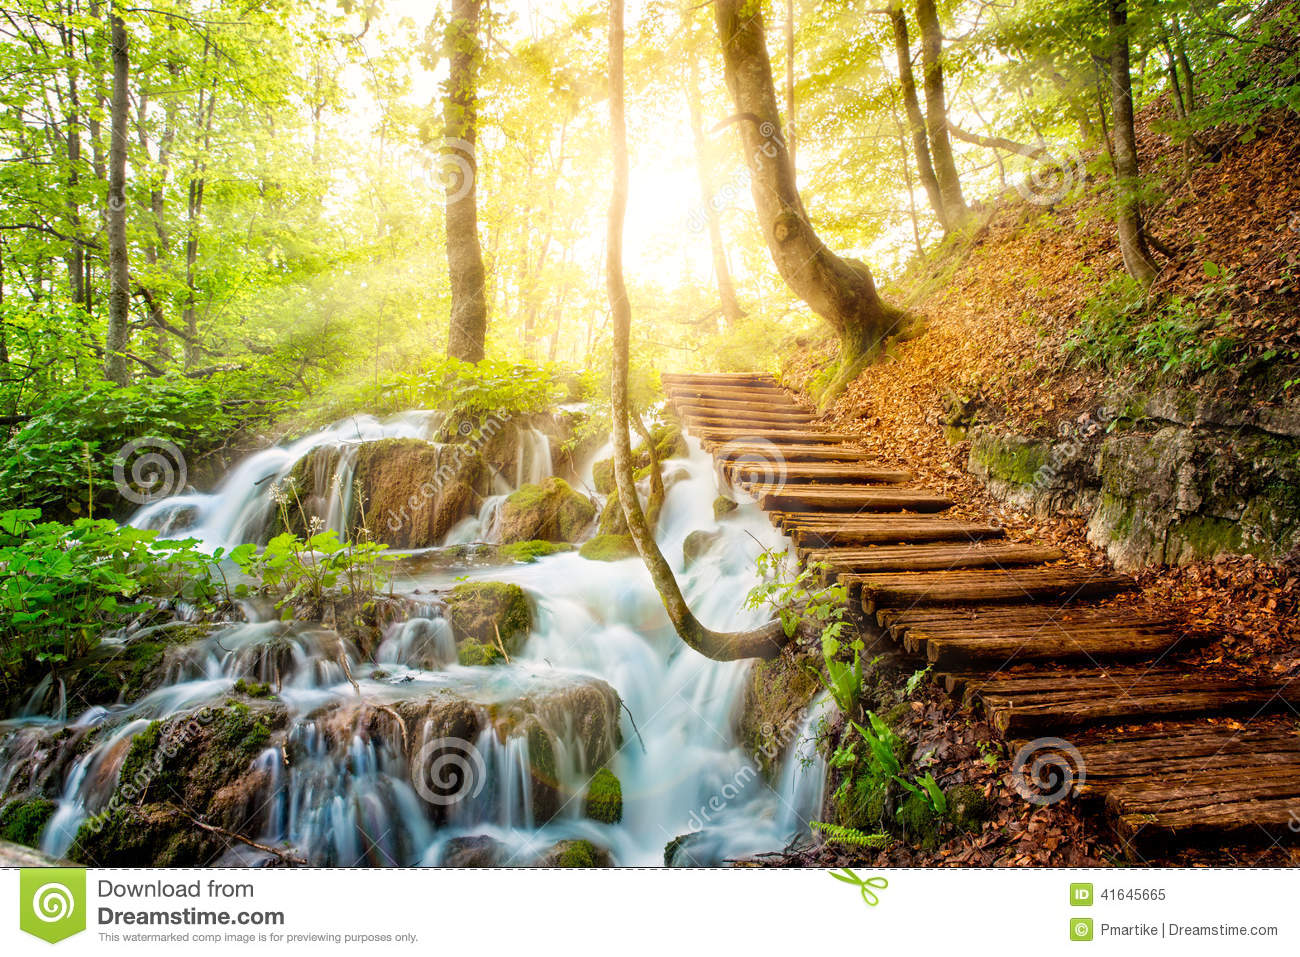 Download Deep Forest Stream With Crystal Clear Water In The Sunshine Stock Image - Image of path, crystal: 41645665